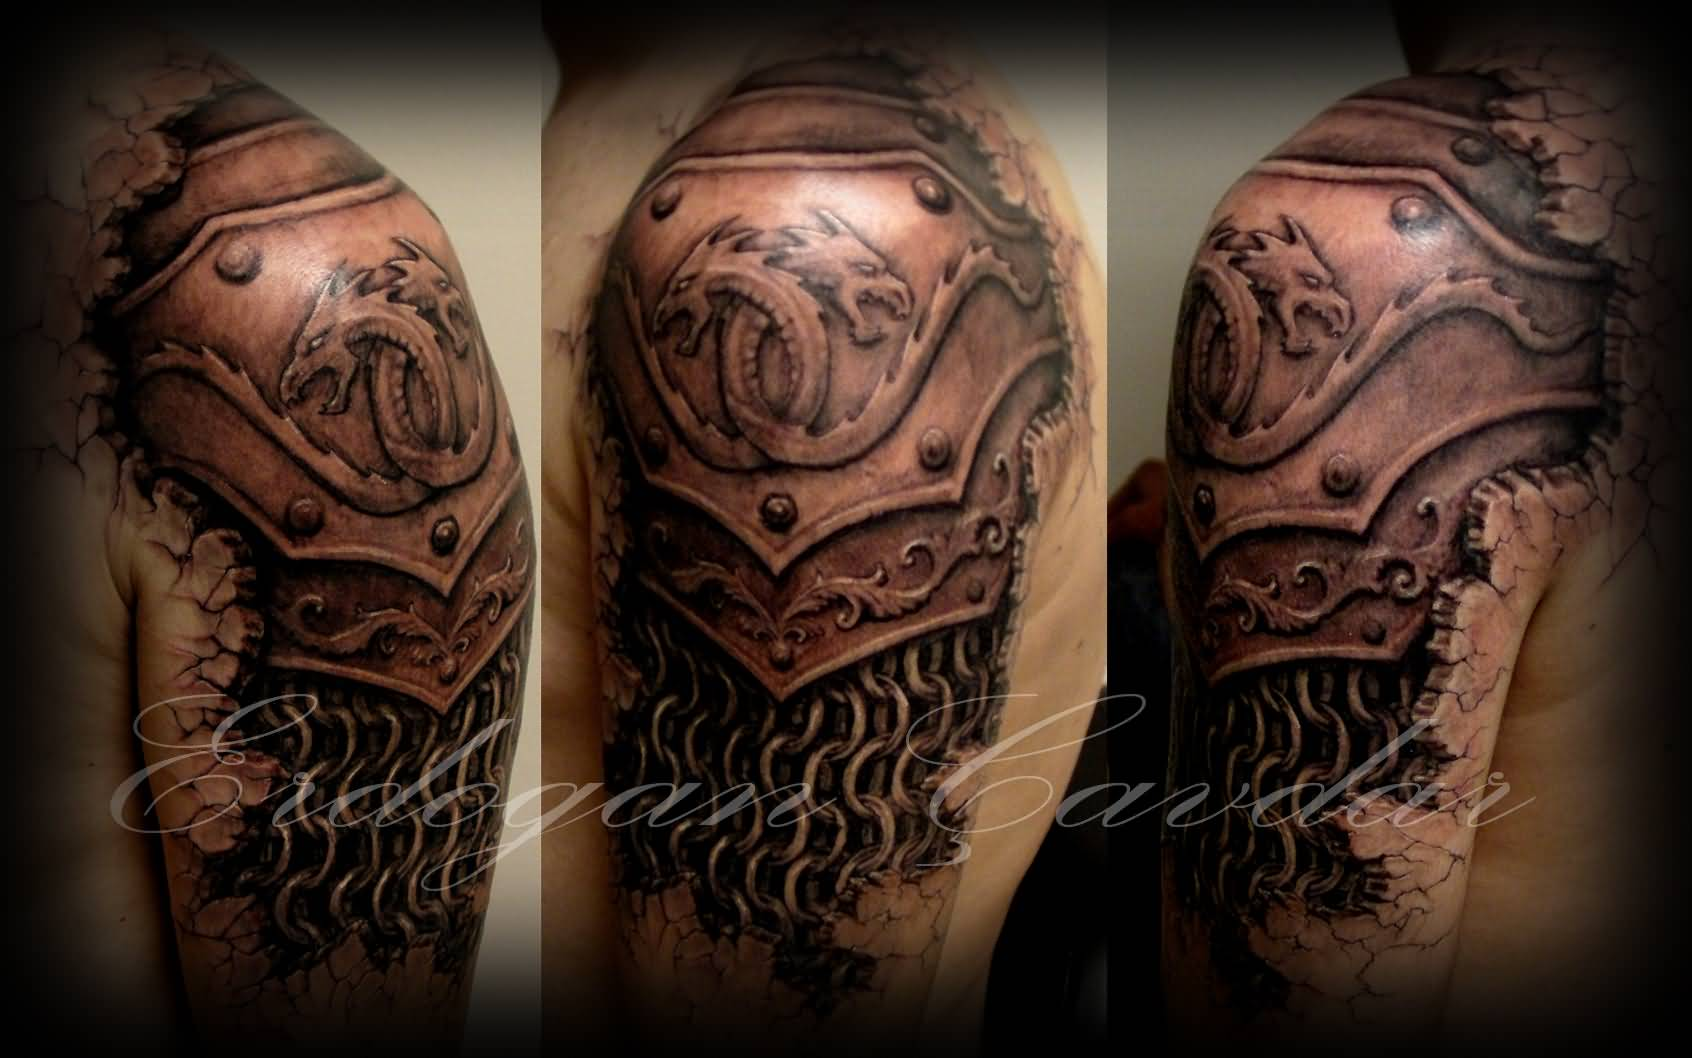 Dragons 3d Armor Tattoo On Shoulder By Erdogancavdar D4h5oyx Collection by rony pacha • last updated 10 weeks ago. dragons 3d armor tattoo on shoulder by